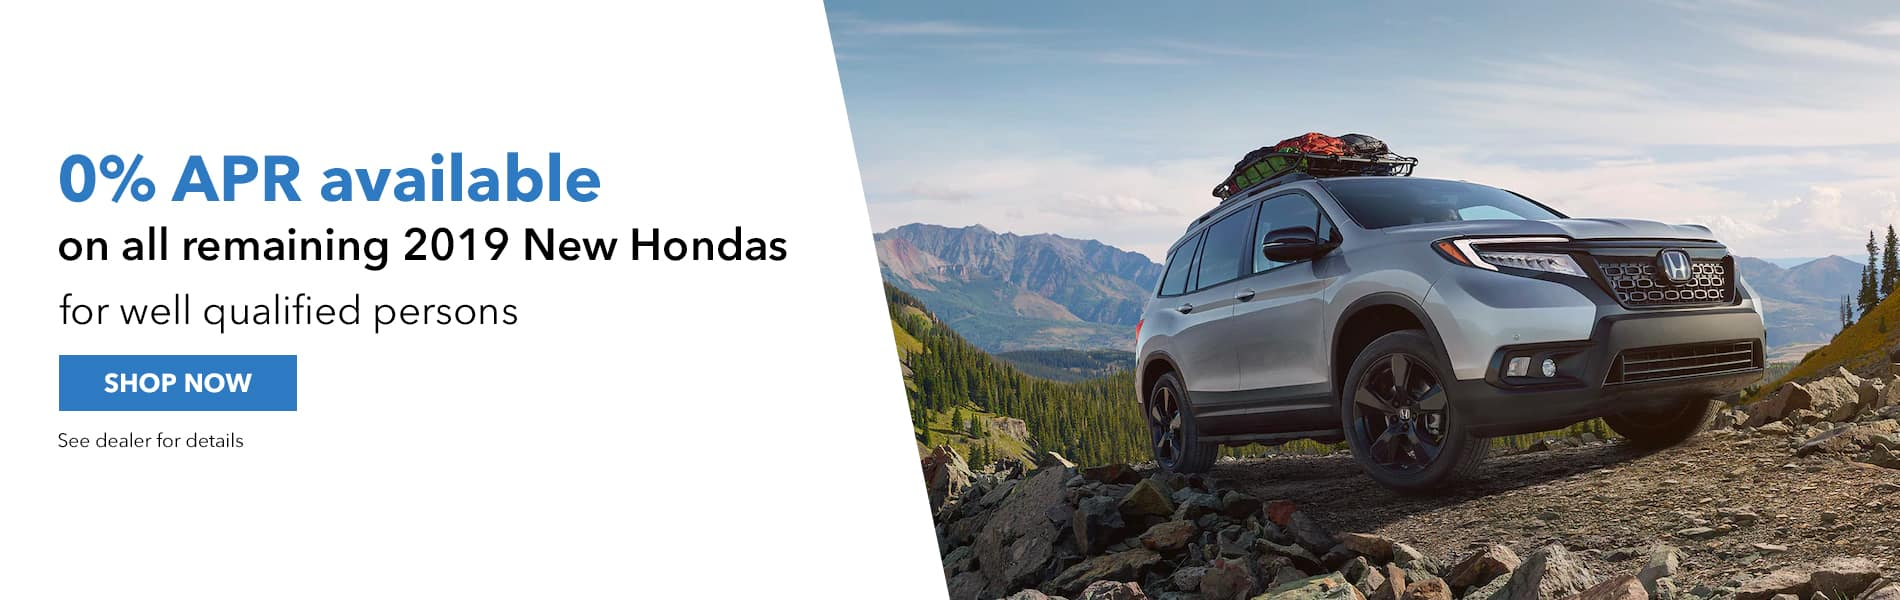 0% APR available on all remaining 2019 New Hondas